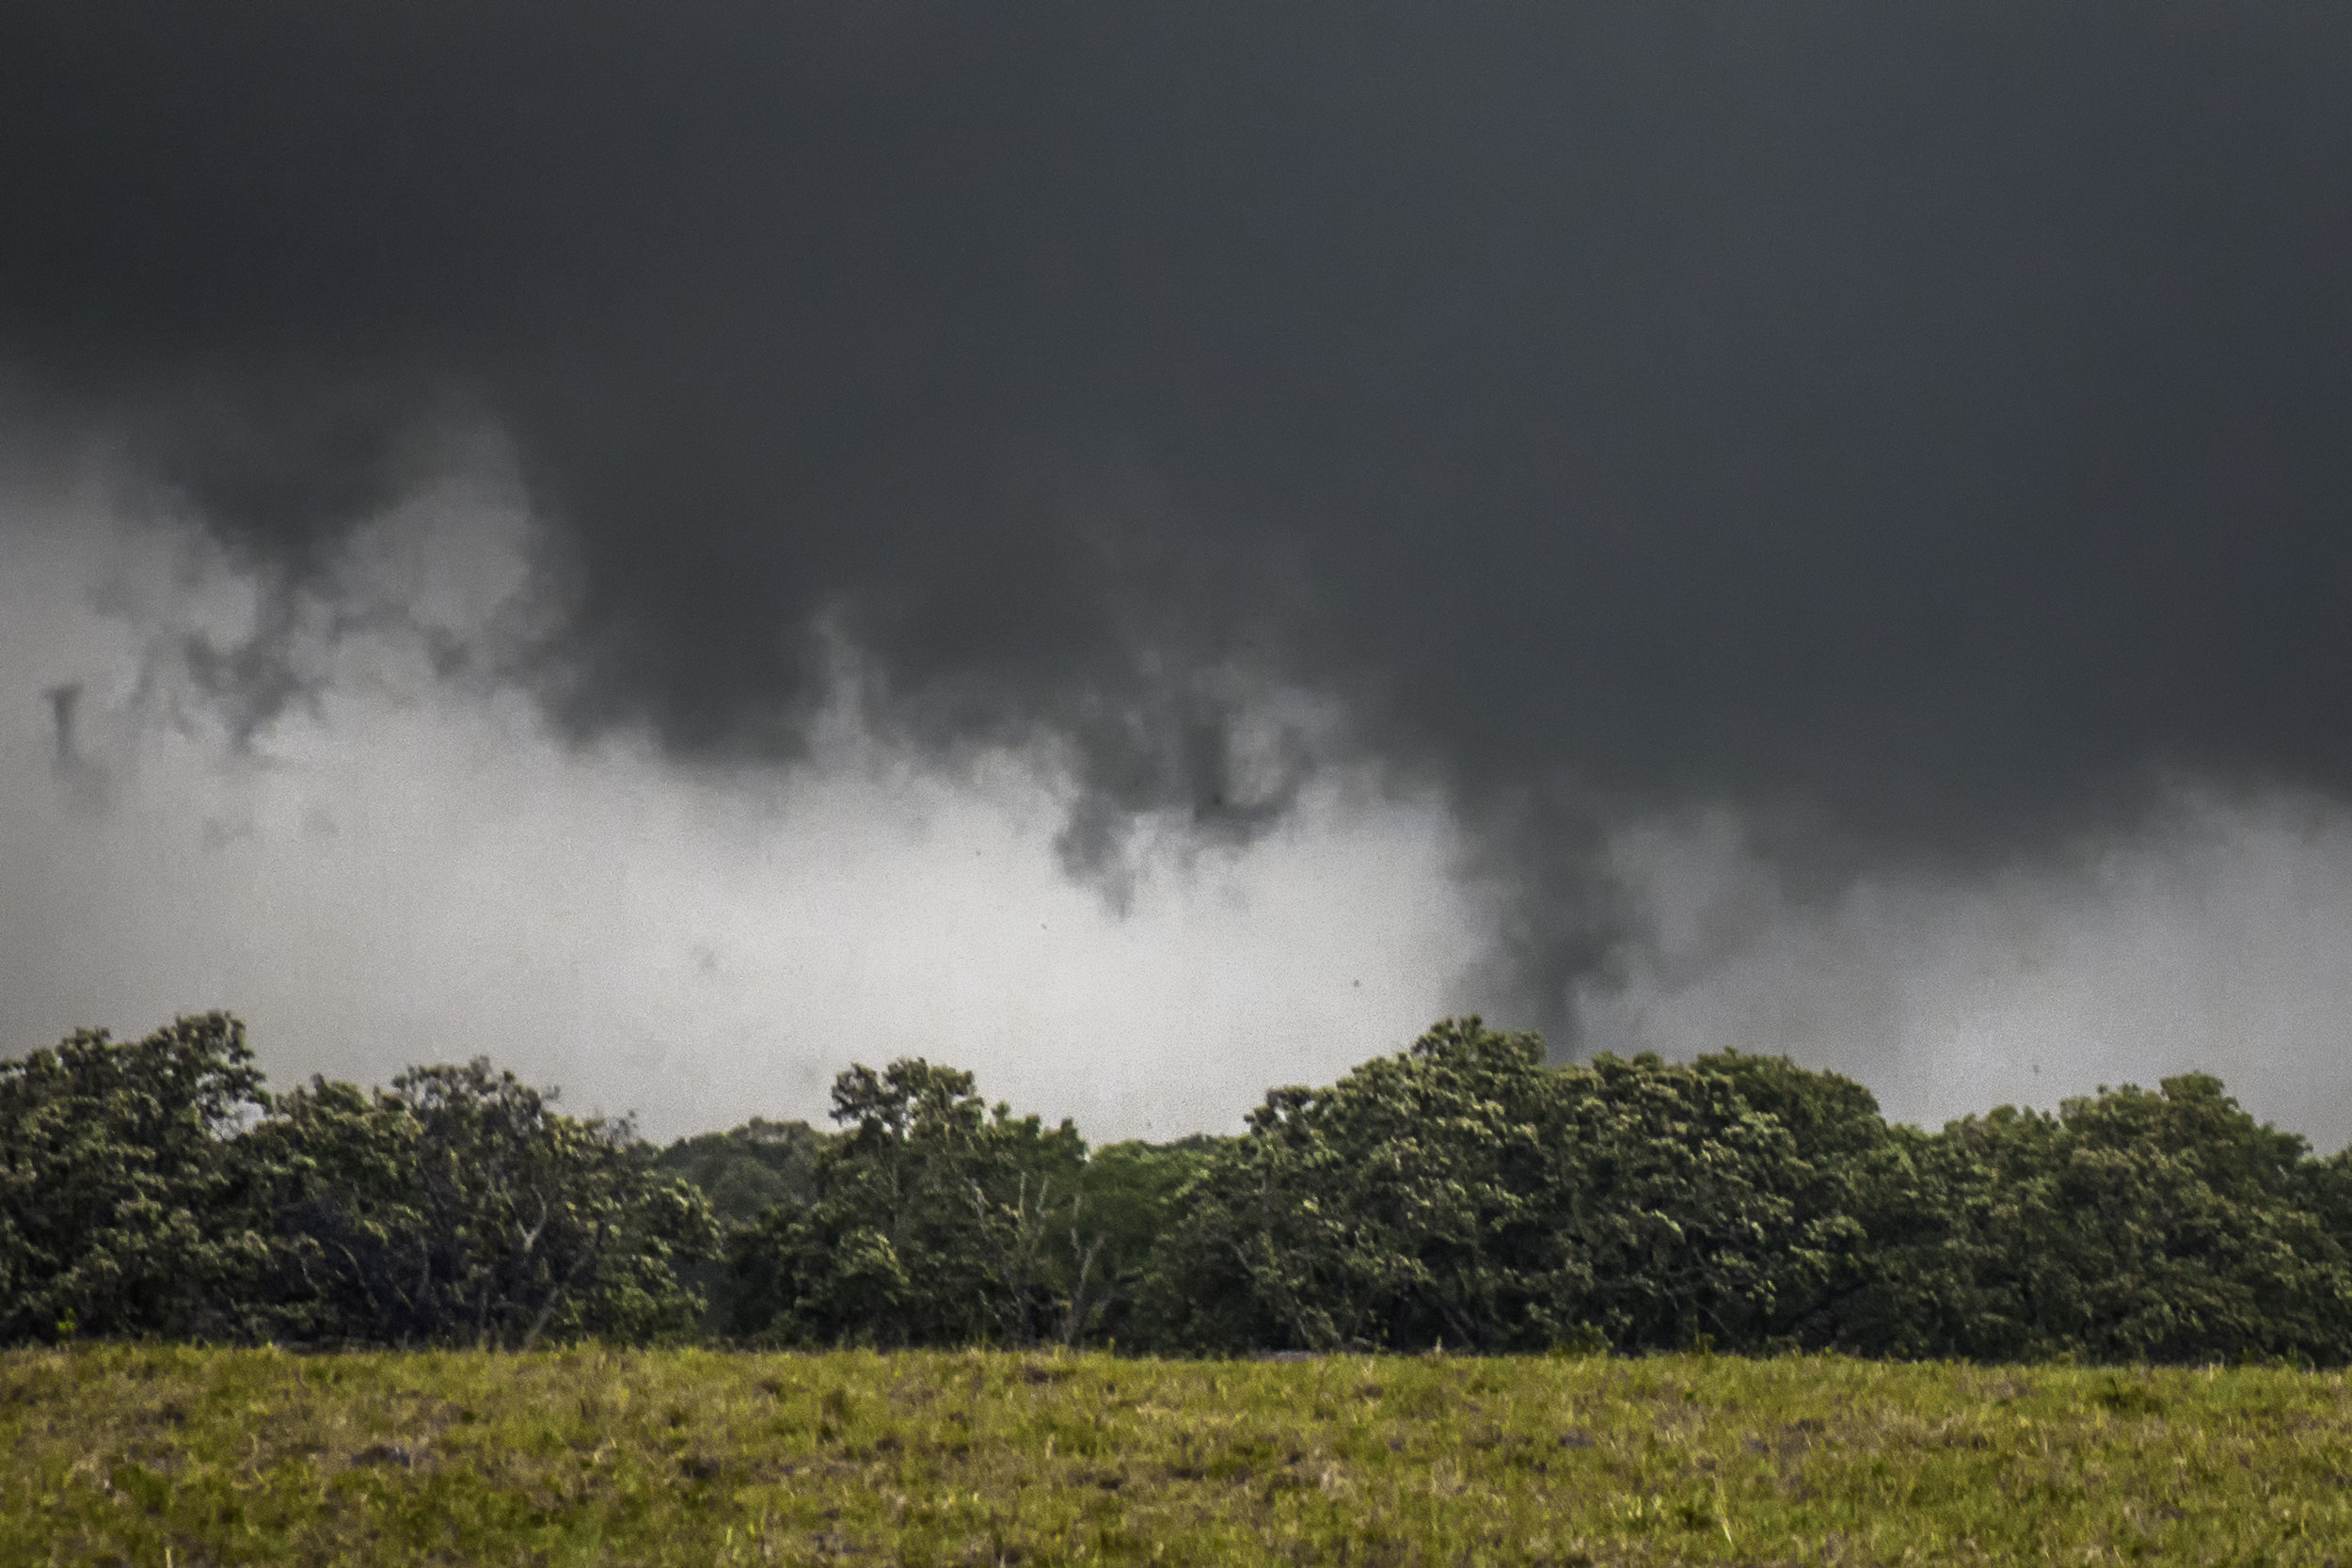 The beginning stages of the EF3 that directly impacted Canton, Texas.